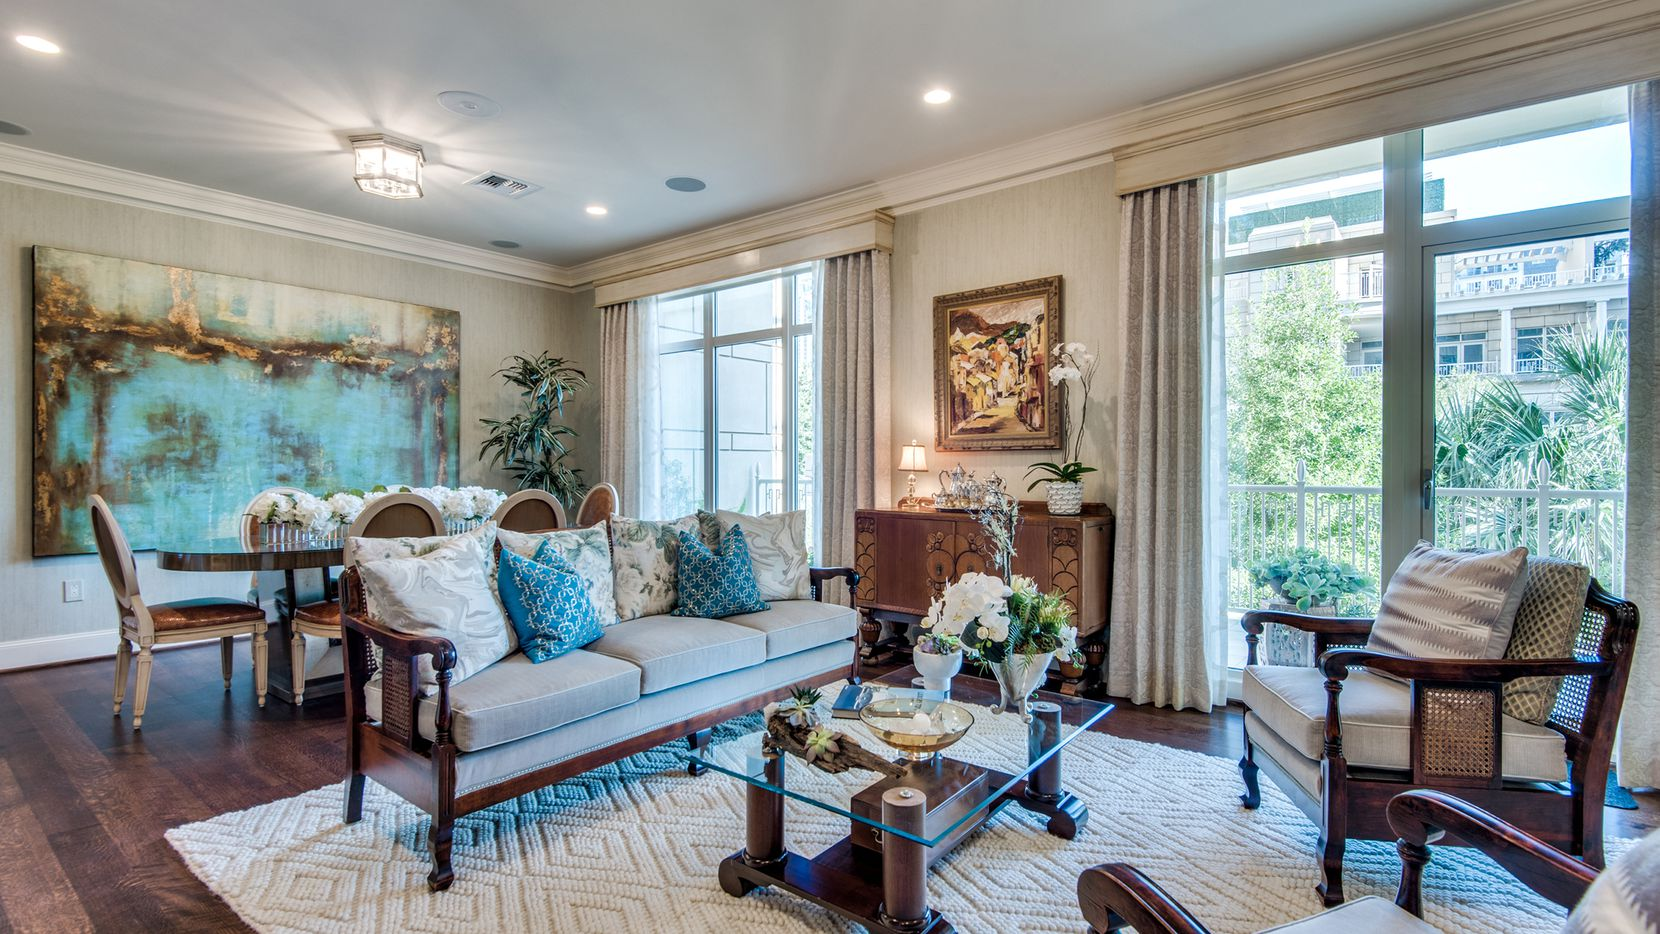 The home at 2555 N. Pearl St., unit 202, within The Residences at The Ritz-Carlton, Dallas, will sell to the highest bidder during an auction taking place June 23 to 25.